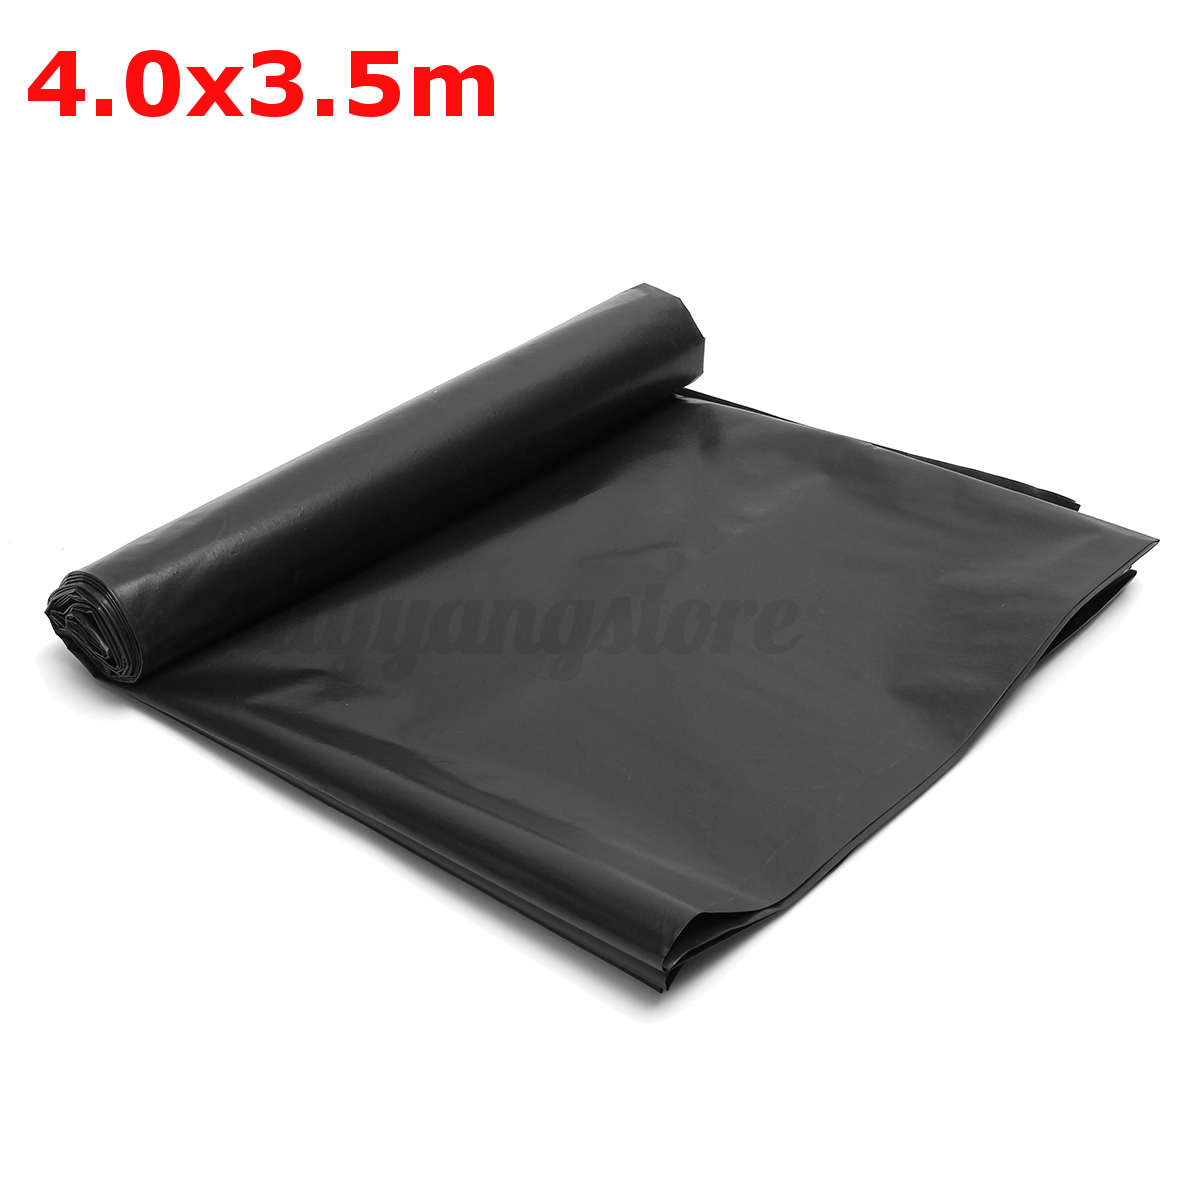 Durable fish pond liners reinforced hdpe membrane garden for Garden pool liners uk